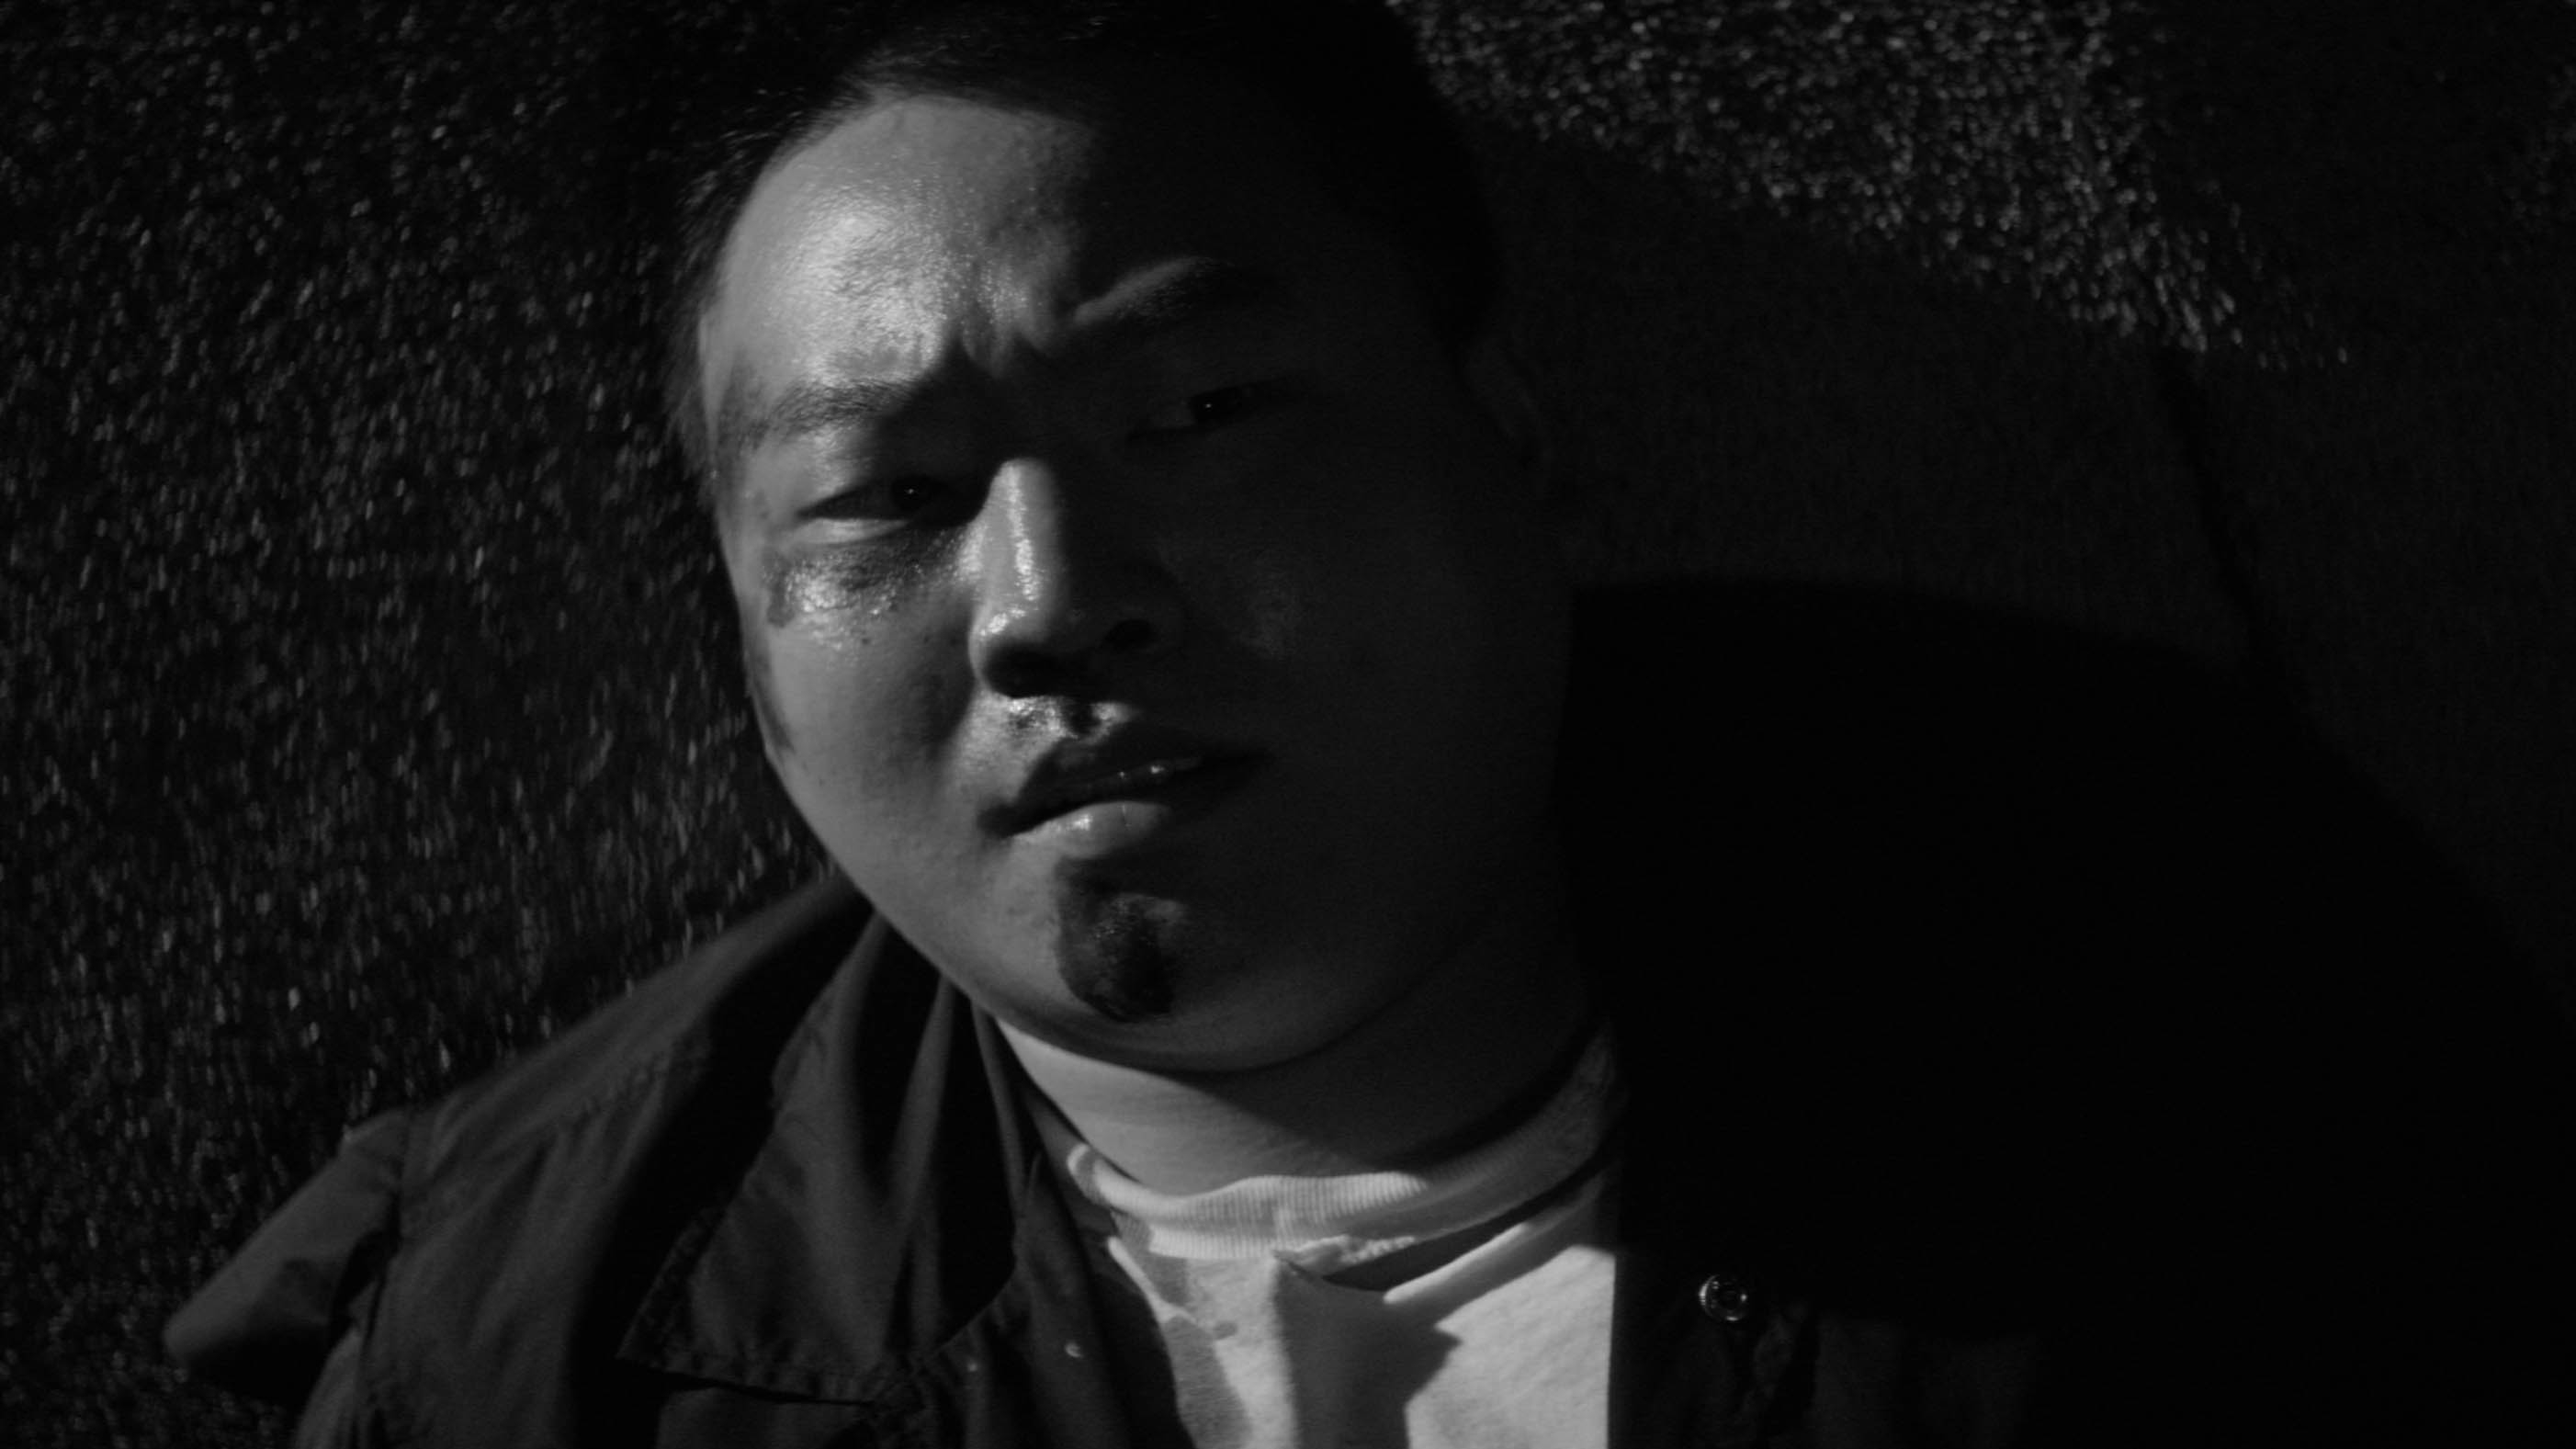 Man with beaten face on pavement, black and white still